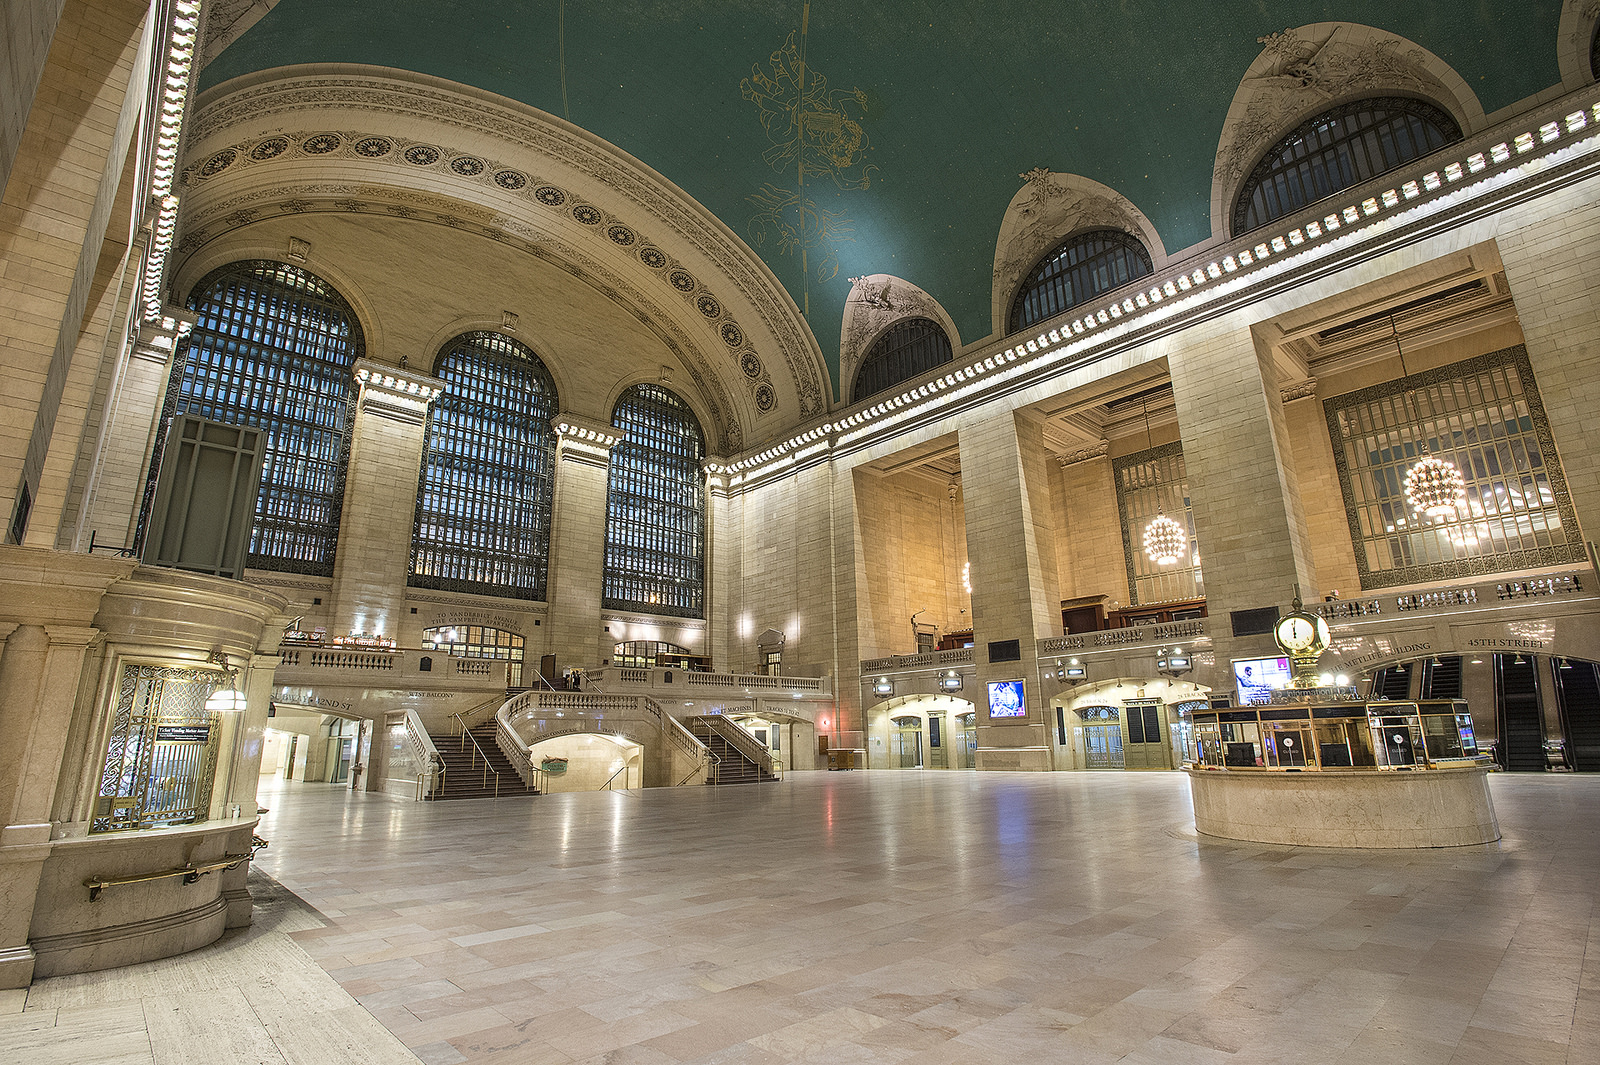 Blizzard of 2015: Empty Grand Central Terminal | © Metropolitan Transportation Authority of the State of New York/Flickr